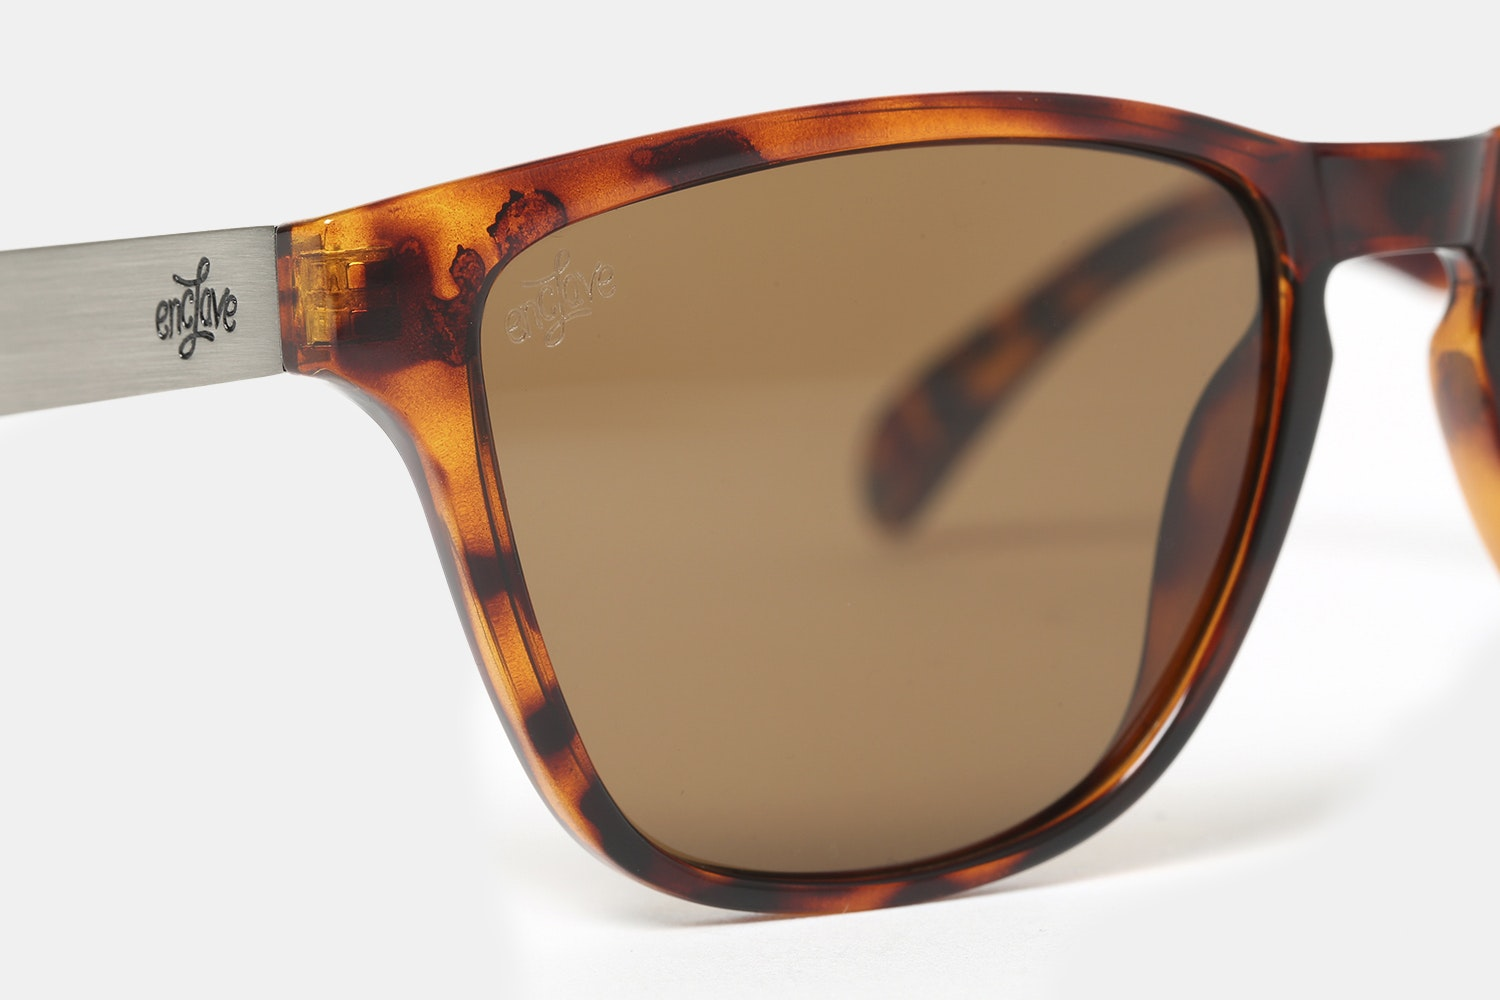 Enclave Model 20 Sunglasses